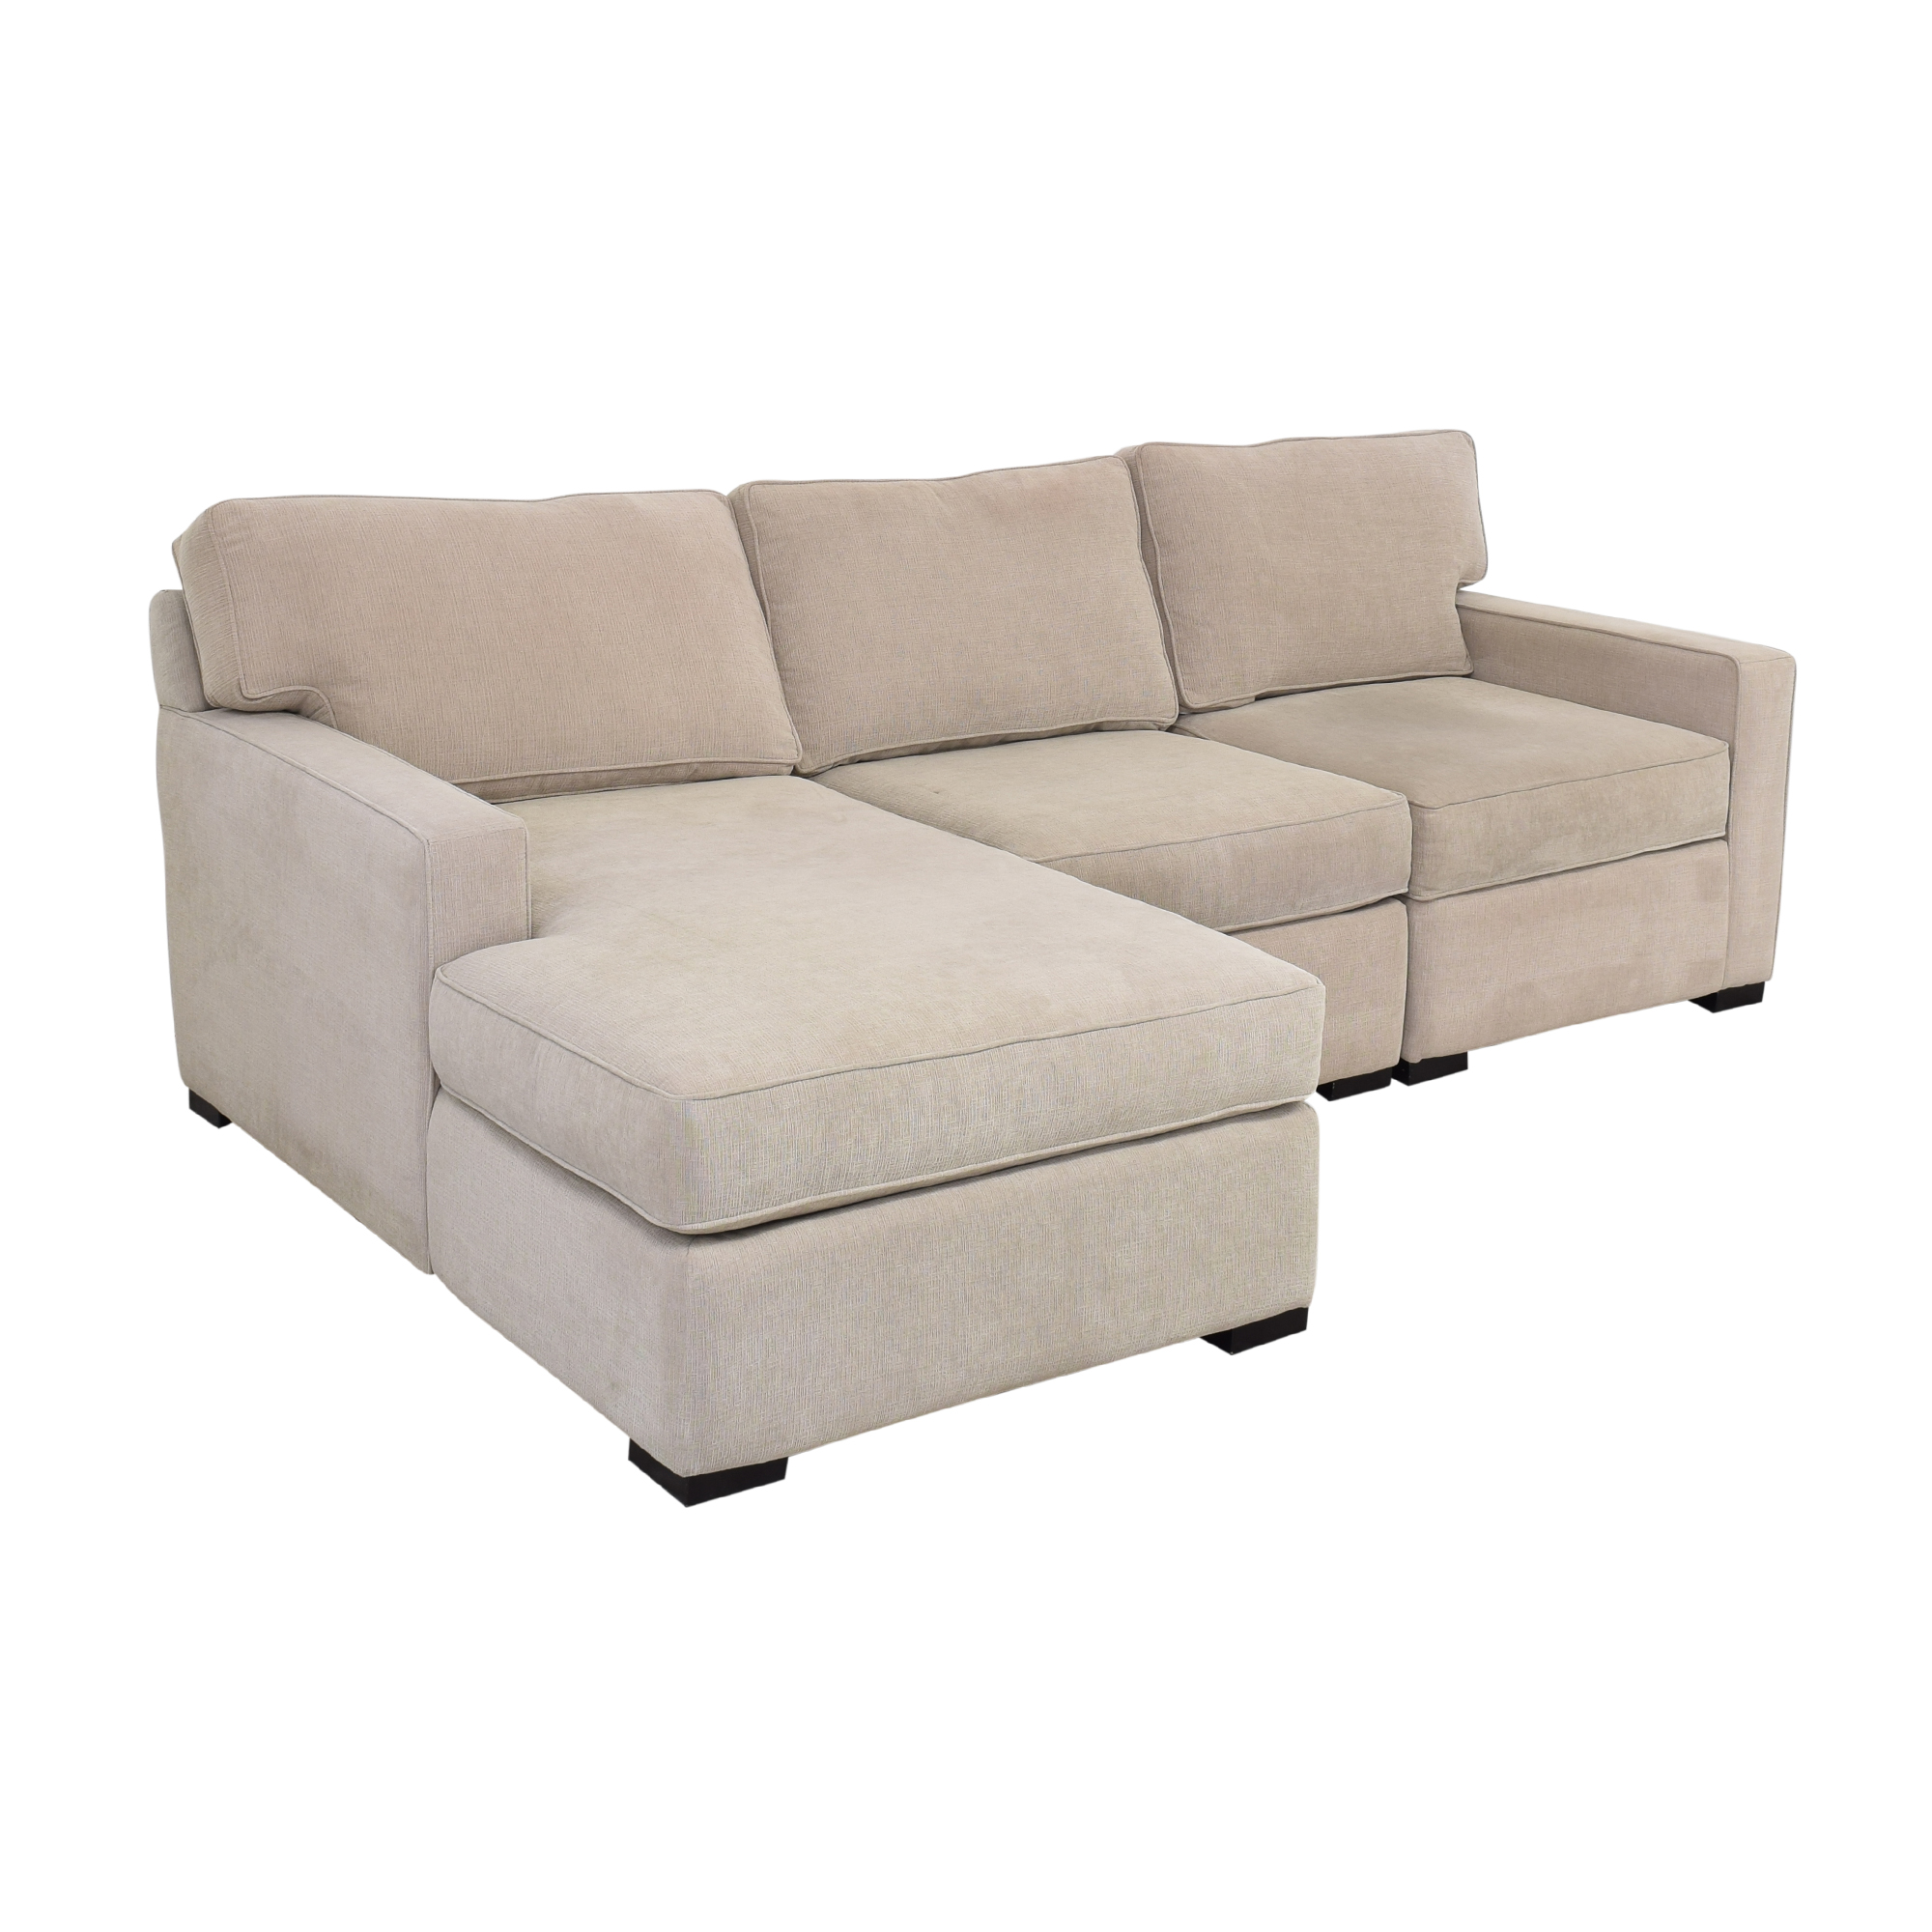 Macy's Macy's Chaise Sectional Sofa for sale